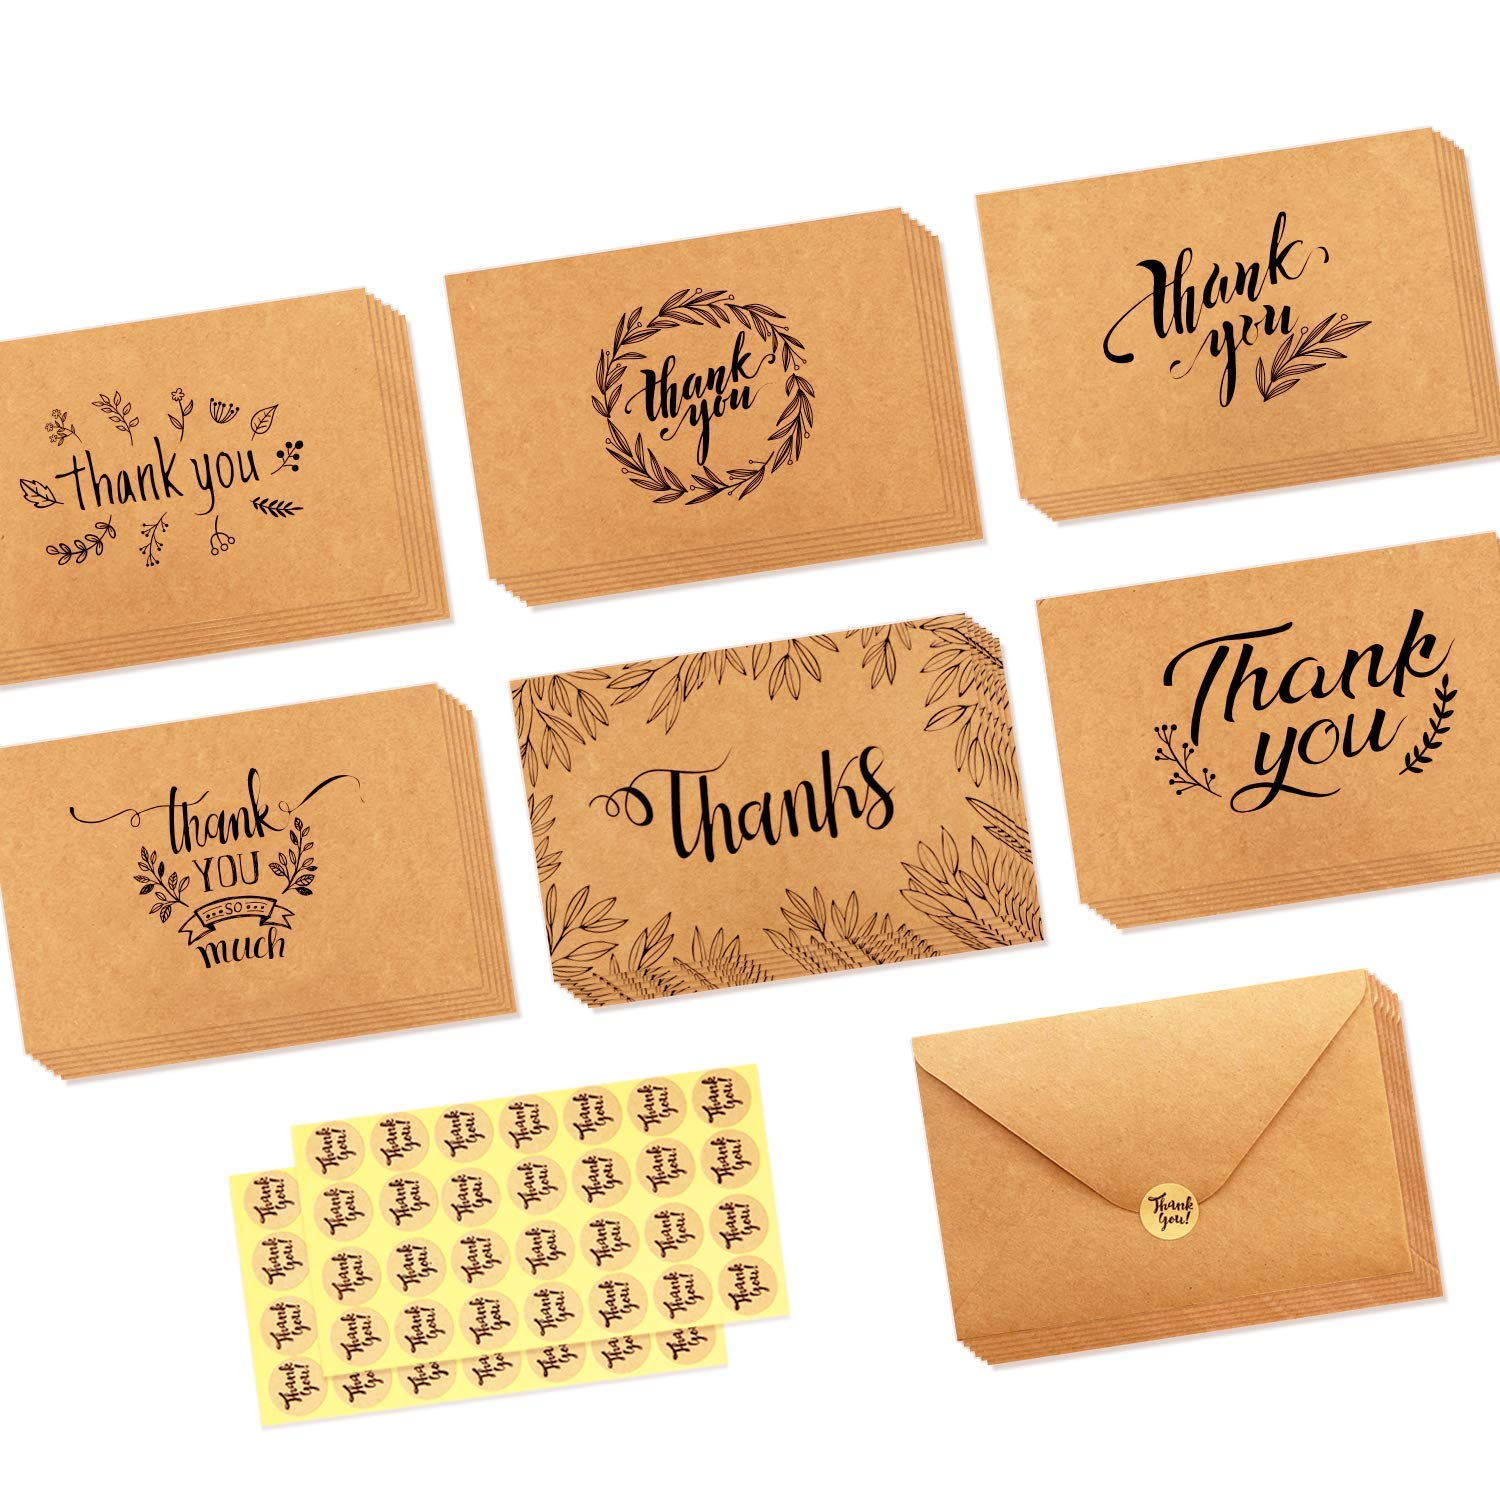 36 Pack Brown Kraft Paper Thank You Cards Thank U Greeting Card W/ 36 Kraft Paper Envelopes and 36 Pcs Envelope Thank You Stickers for Wedding, Graduation, Baby Shower, 3 x 4 Inches Yojoloin